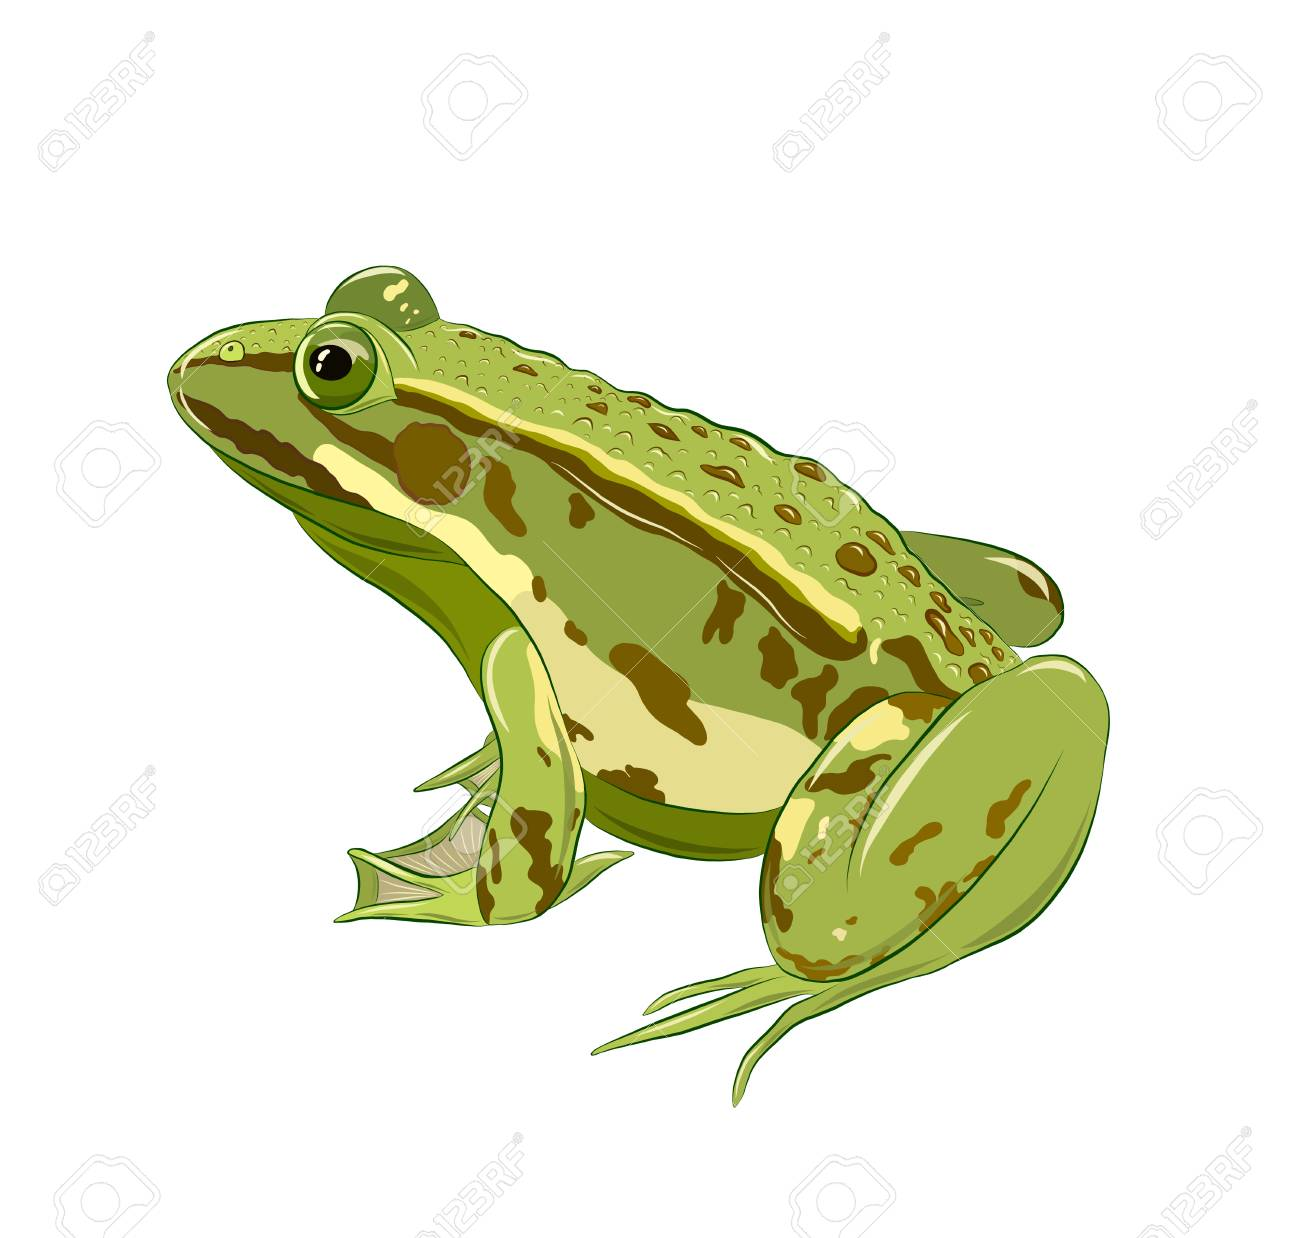 green toad with warts - 123617520